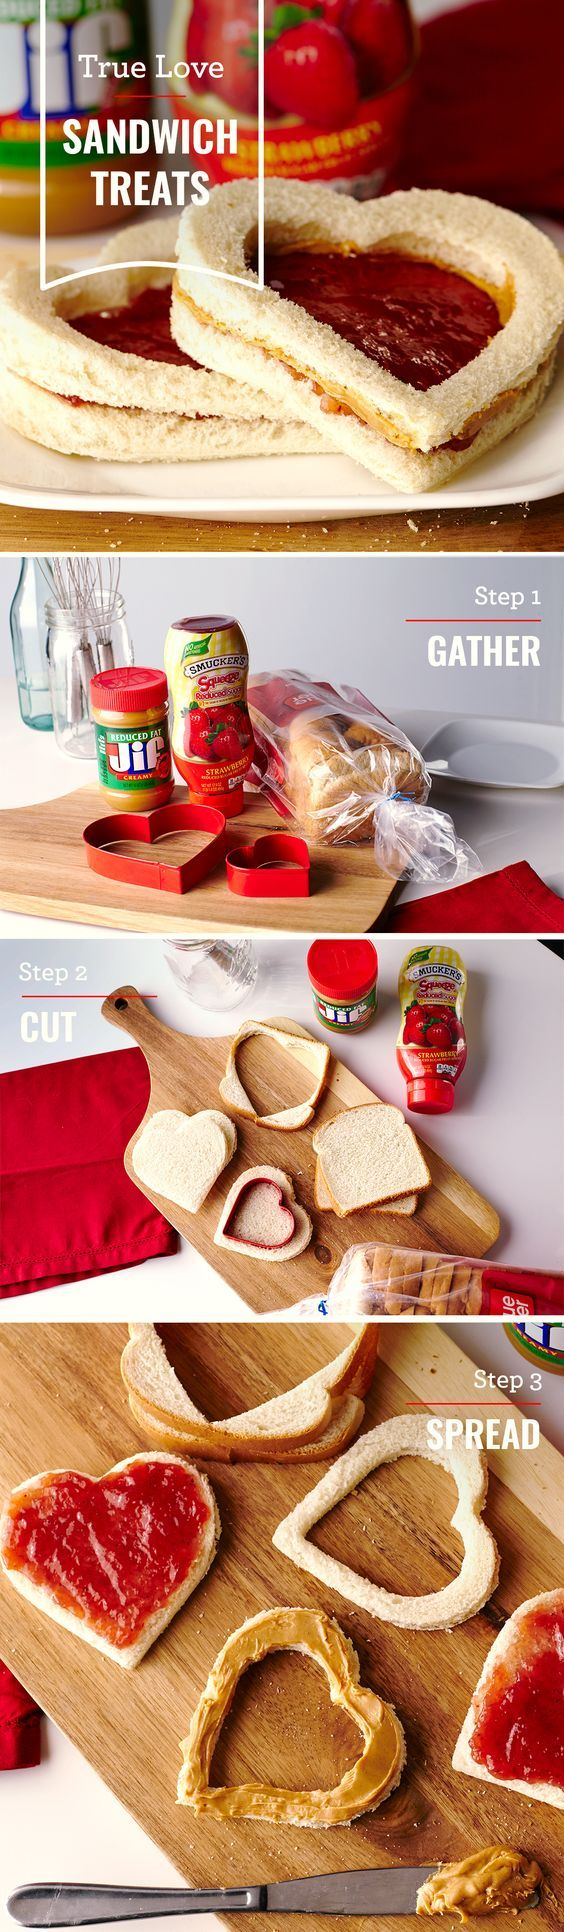 Brighten up your kid's day when they open their lunchbox to see a special PB&J inside. Explore all the delicious ways you can make your own love, to go with a PB&J at LovePBJ.com